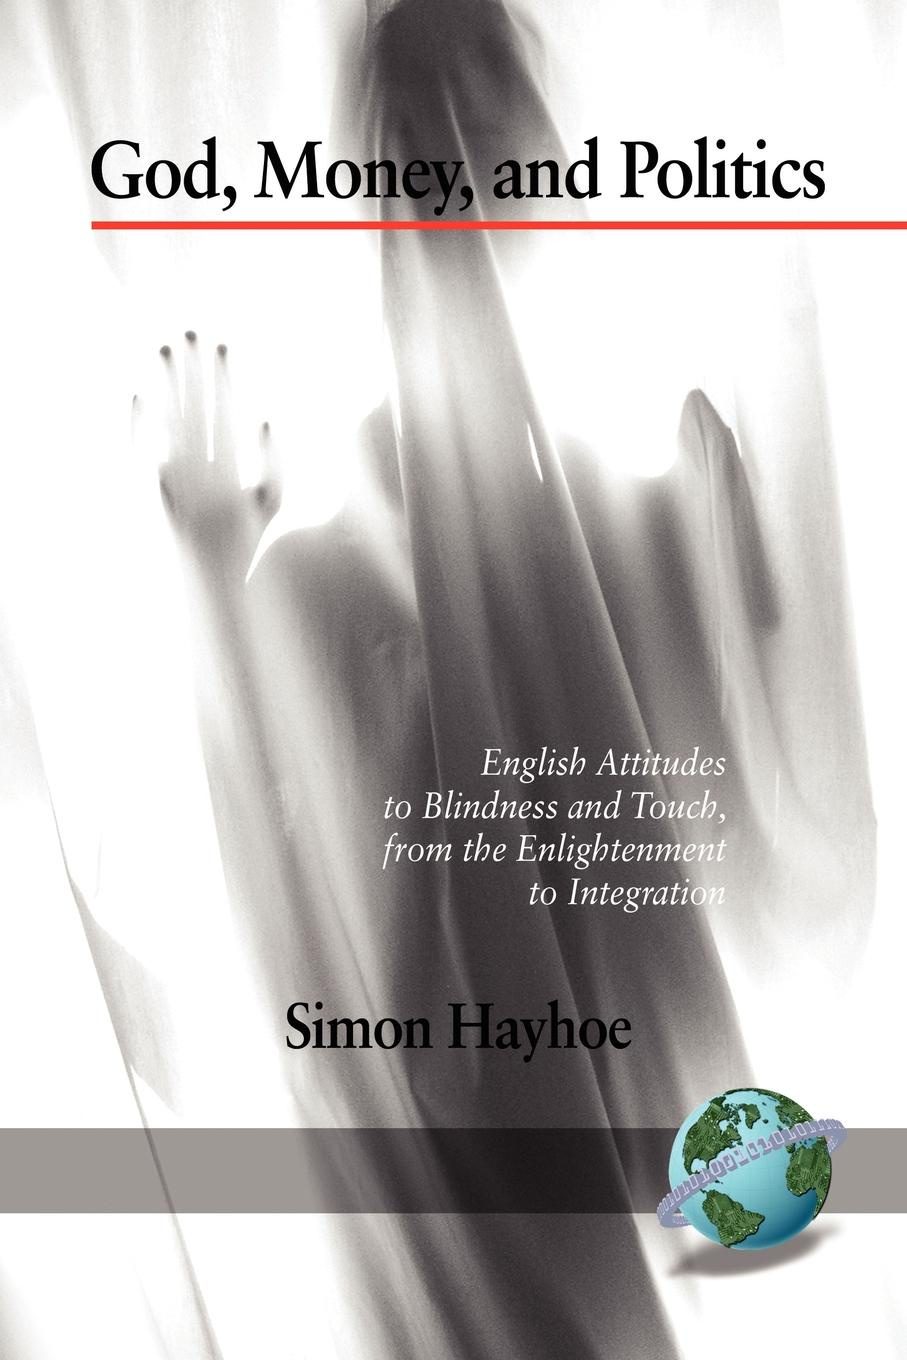 Simon Hayhoe God, Money, and Politics. English Attitudes to Blindness and Touch, from the Enlightenment to Integration (PB)